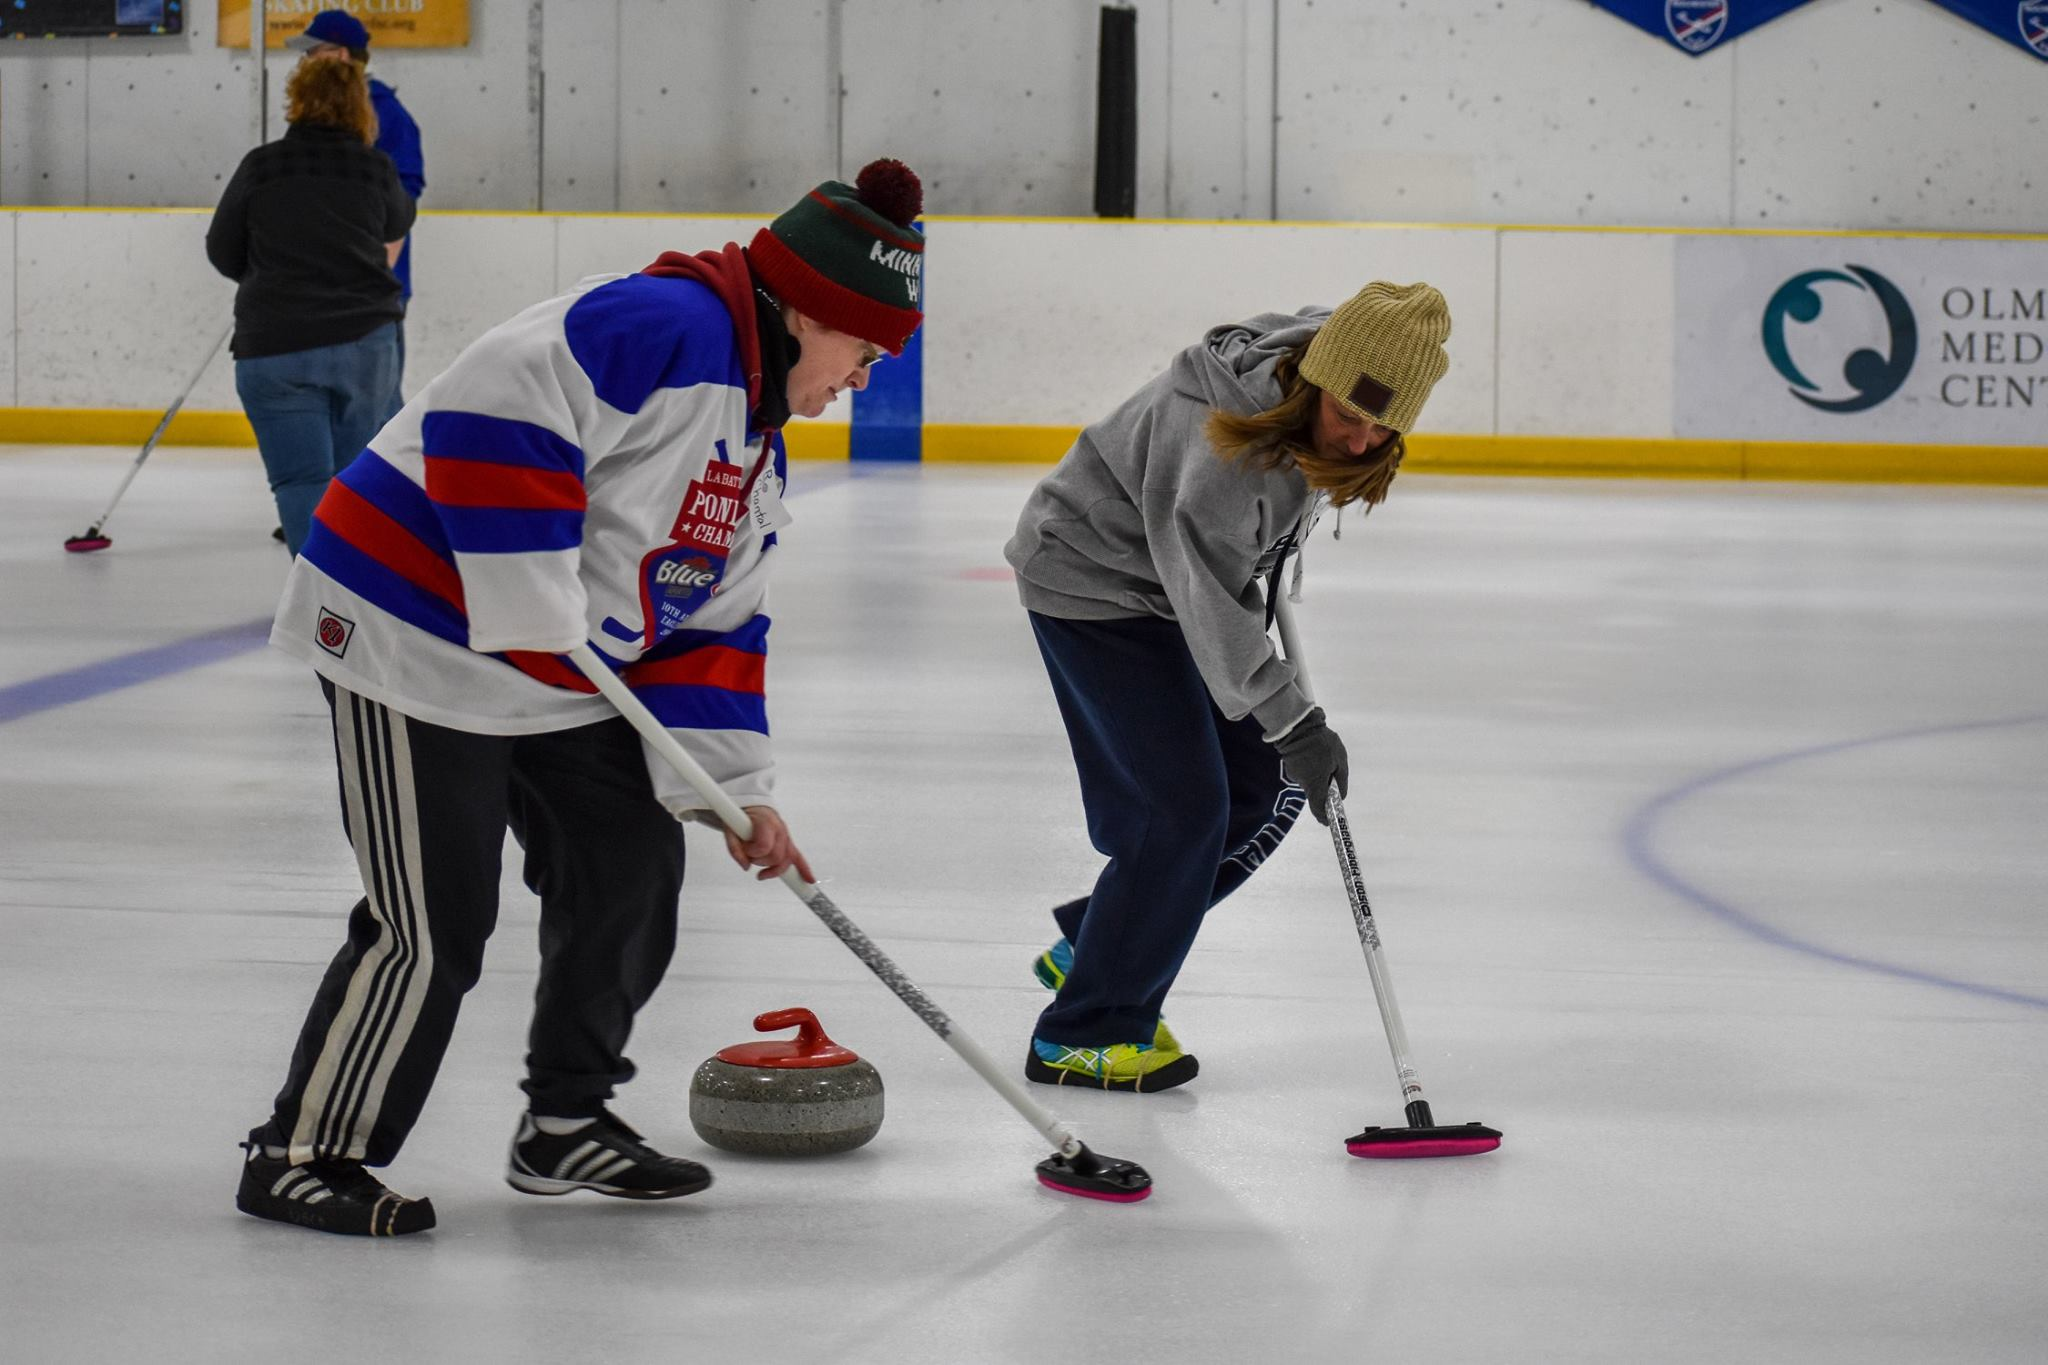 Corporate Curling - Does your organization want to participate in a unique team building activity that's completely new and different? If so, please contact us, and we can work with you to host a Corporate Curling event complete with instructors and equipment.